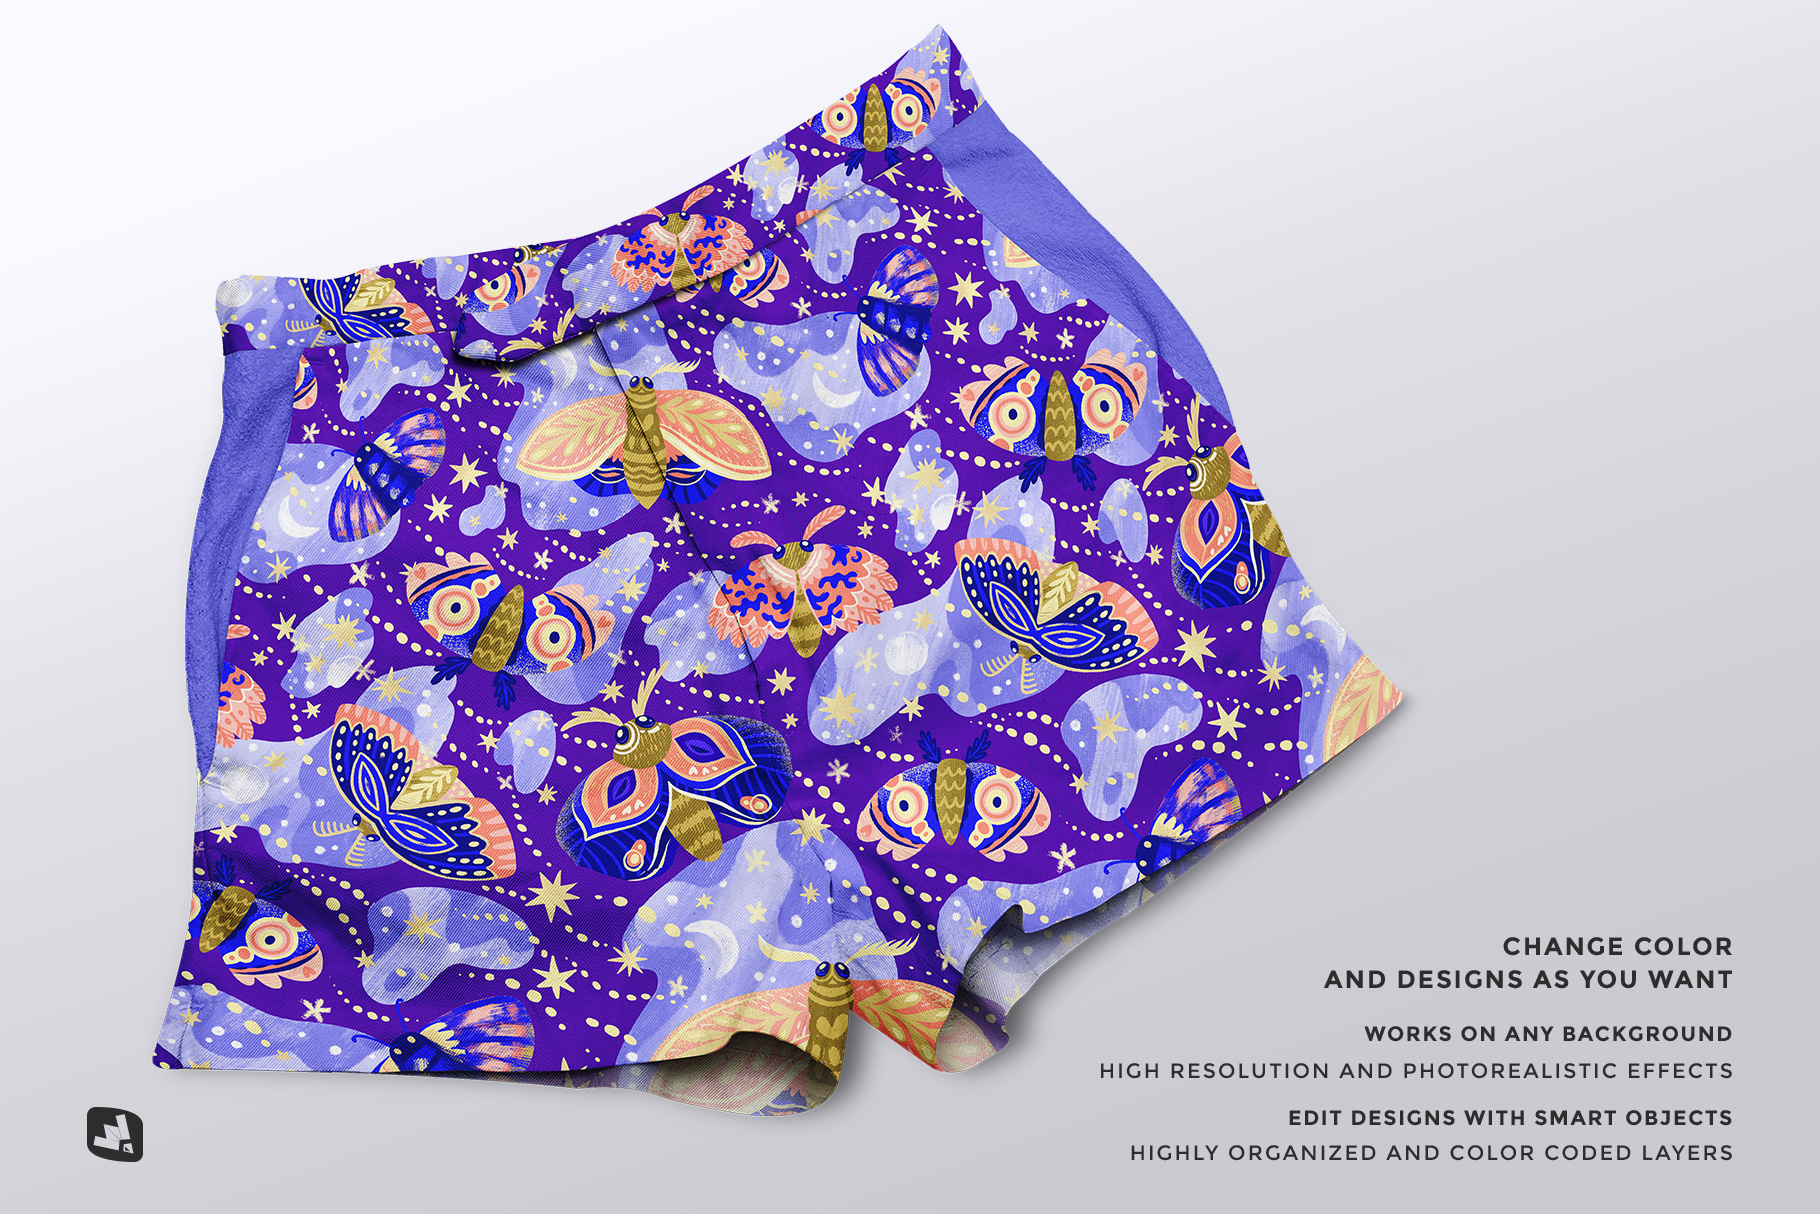 features of the female cotton hot pants mockup